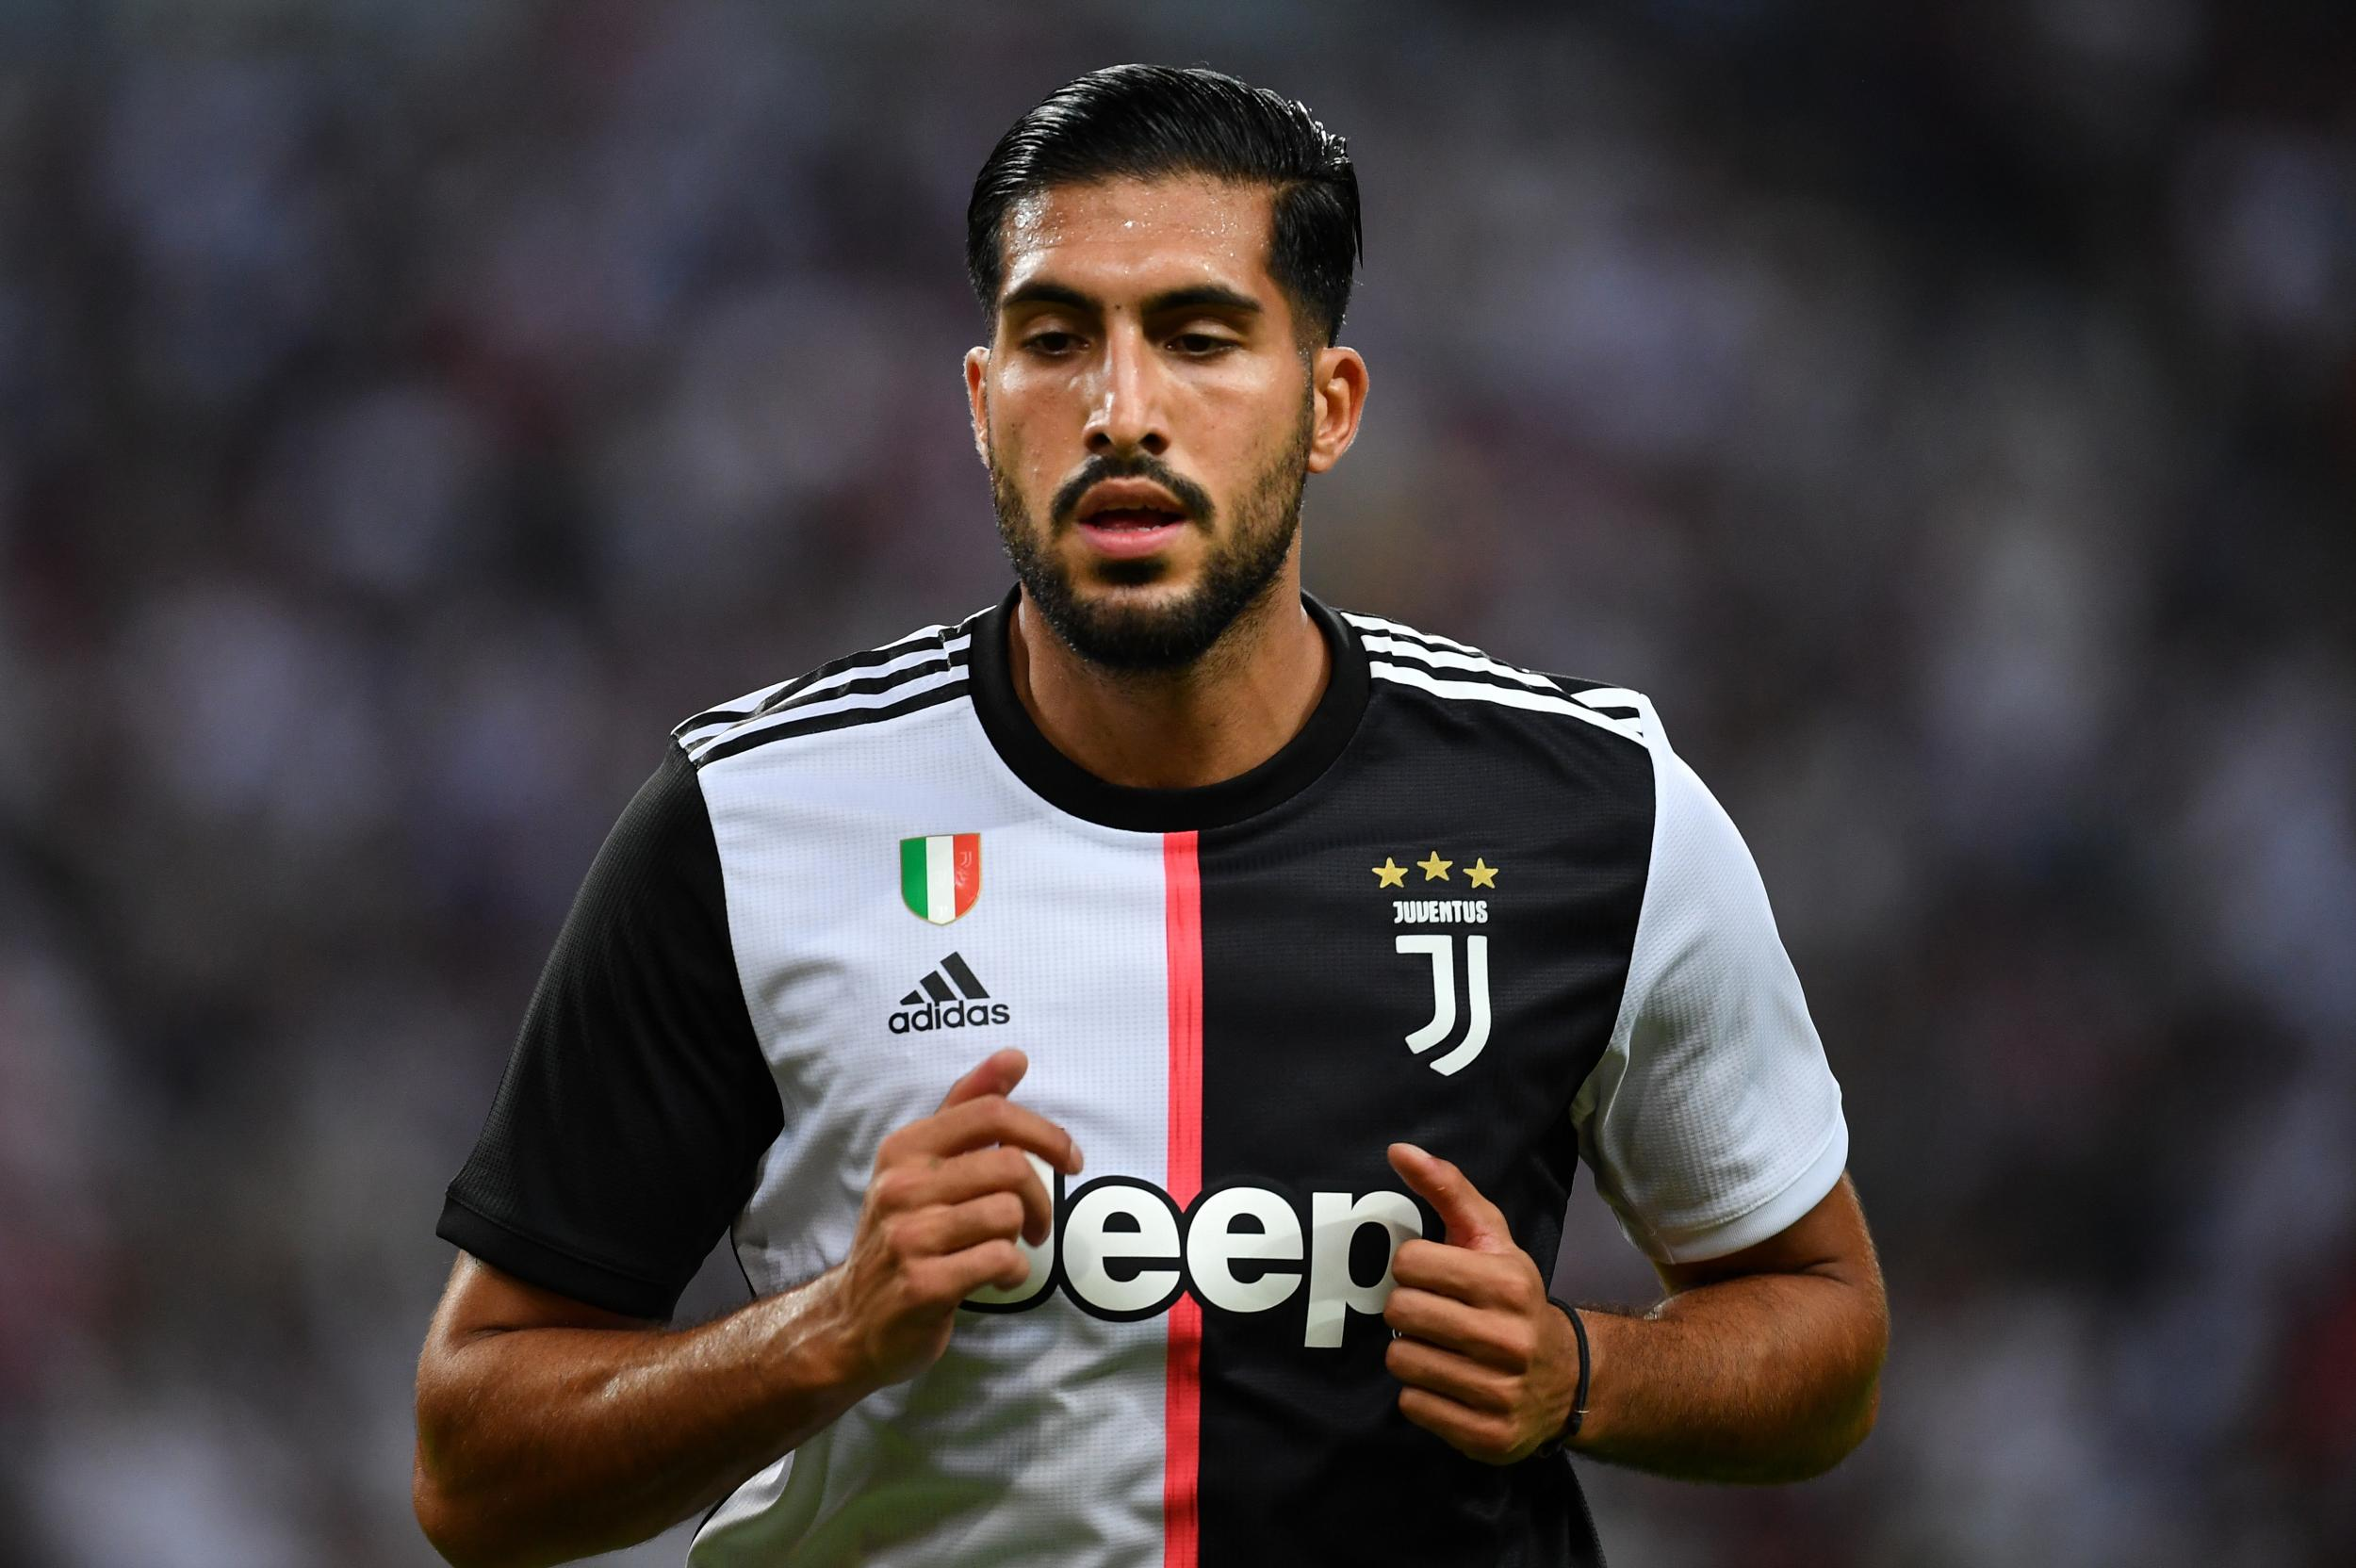 Ex-Liverpool midfielder Emre Can keen to take on board the lessons from 'tough time' on the sidelines at Juventus